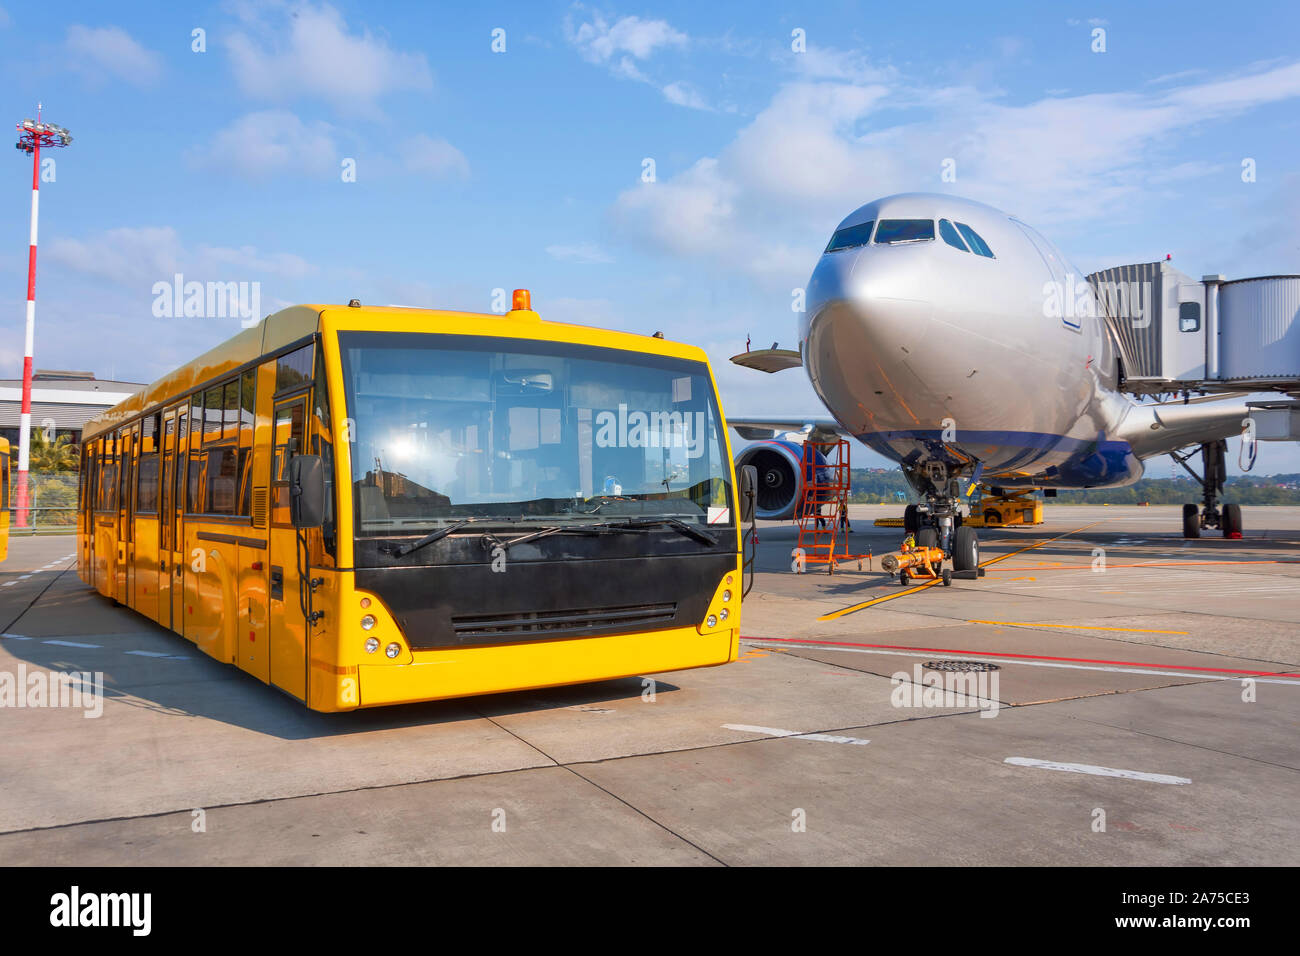 Shuttle Yellow Bus Waiting For Passengers On The Plane For Transportation To The Airport Terminal Aircraft Arrival Background Travel Tourist Destina Stock Photo Alamy